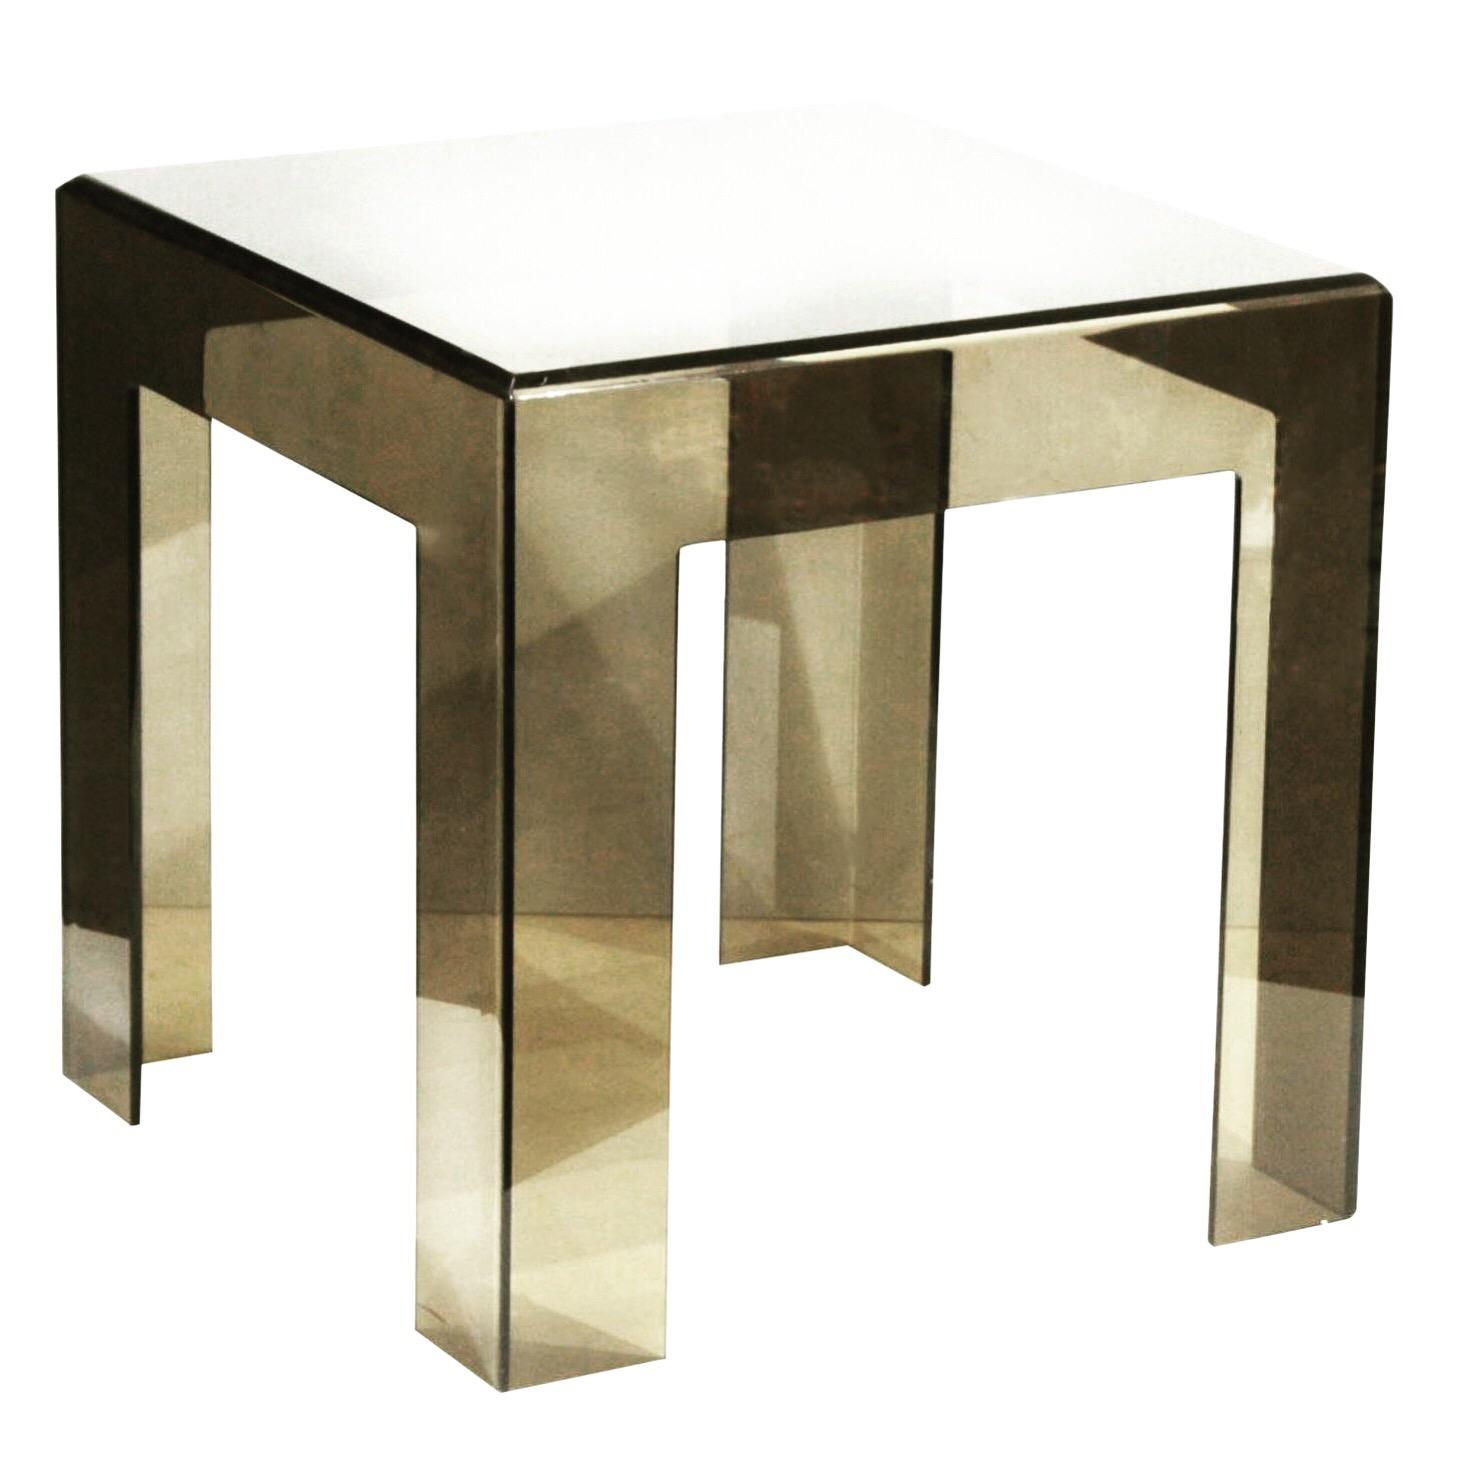 cube side tables for mobilejpegupload master mirrored accent table aluminum door threshold west elm code modern lamp designs black wicker patio furniture kohls slipcovers smoked